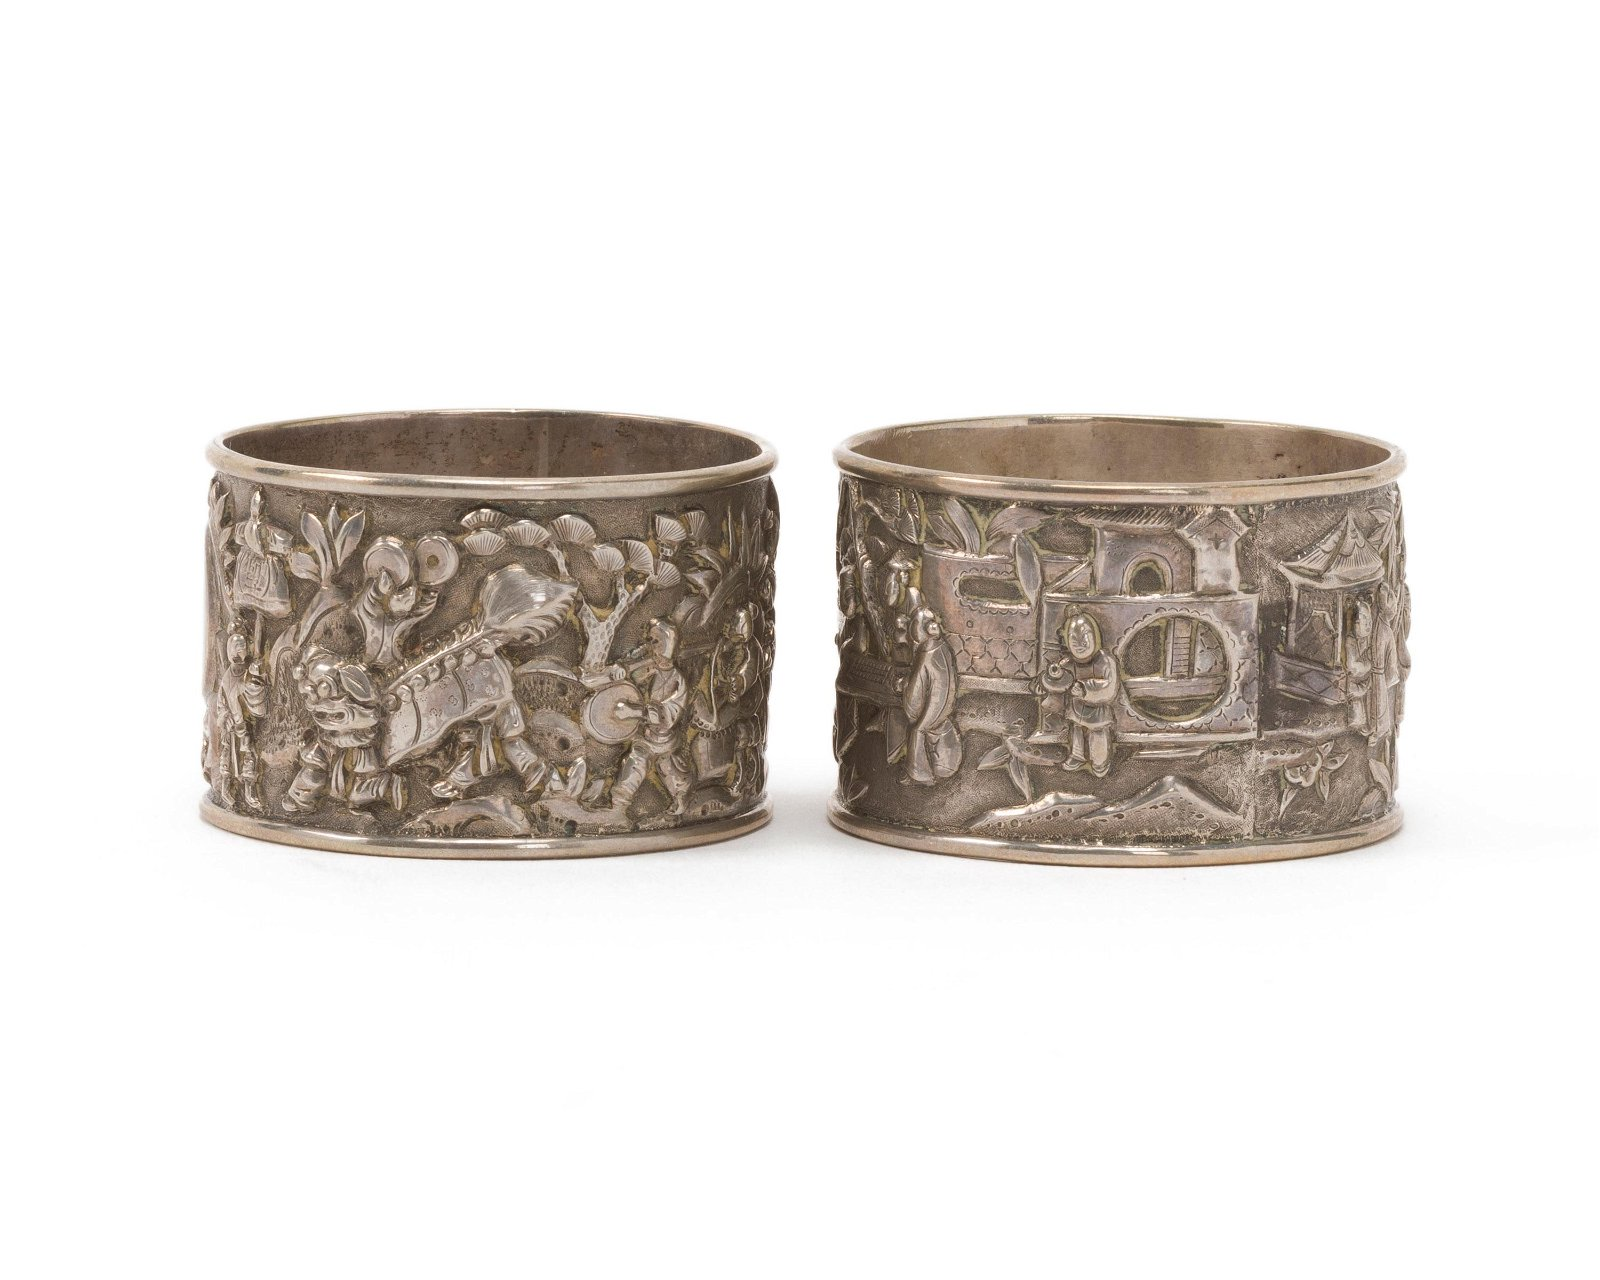 Two Chinese silver napkin rings